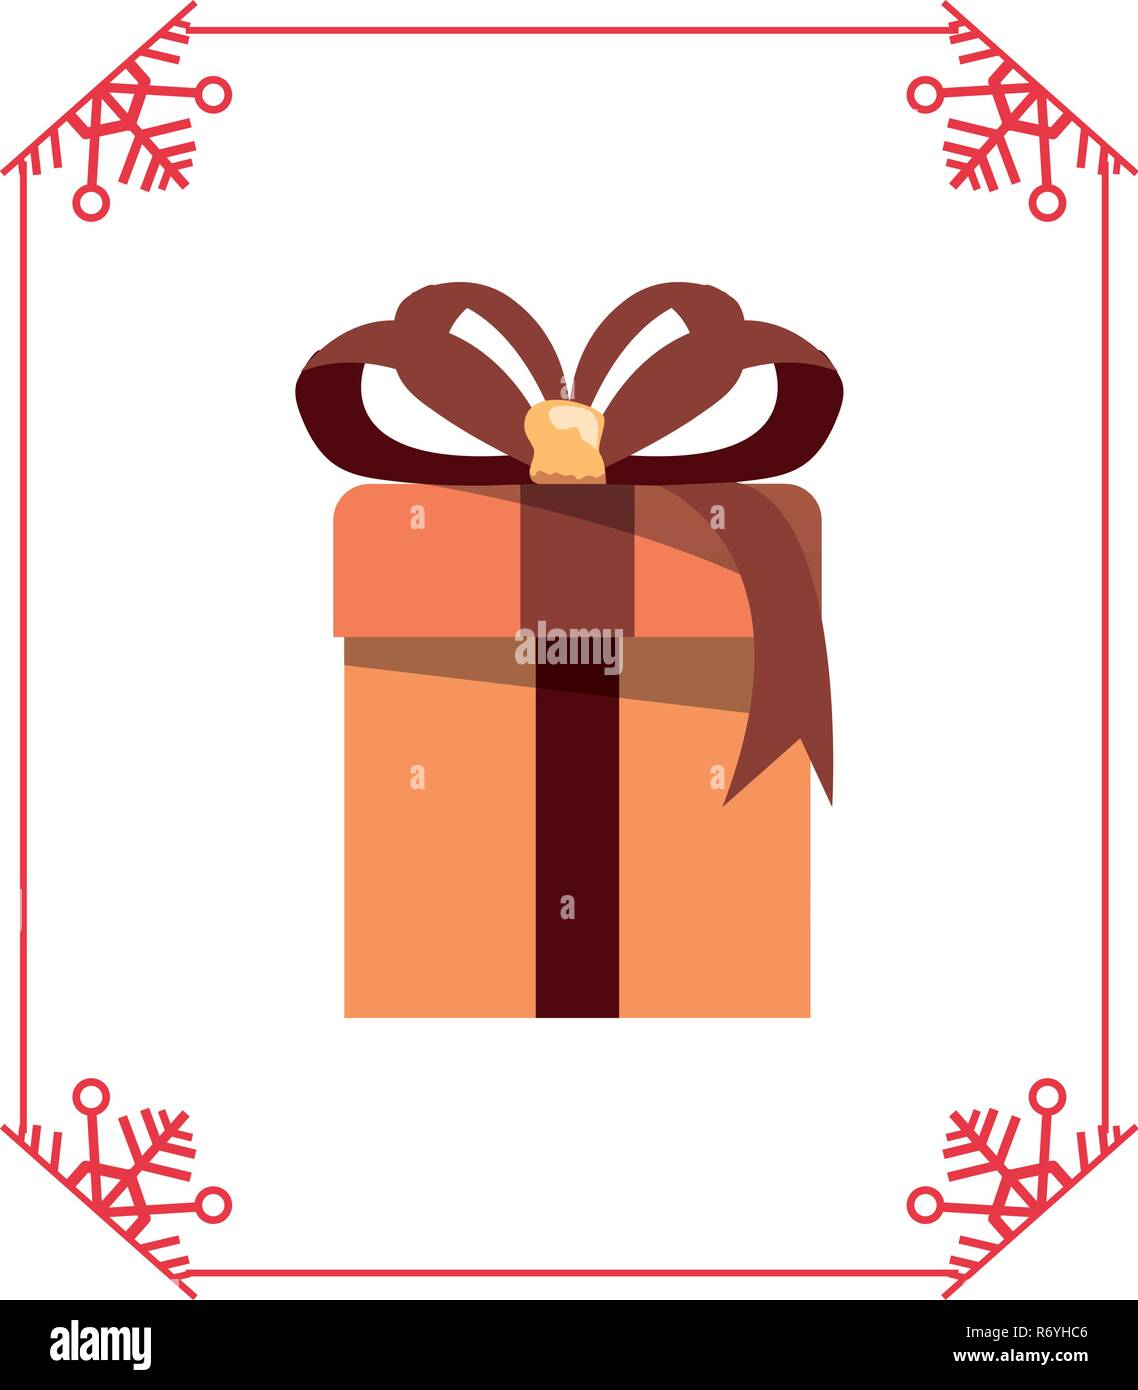 christmas gift box frame decoration vector illustration - Stock Image